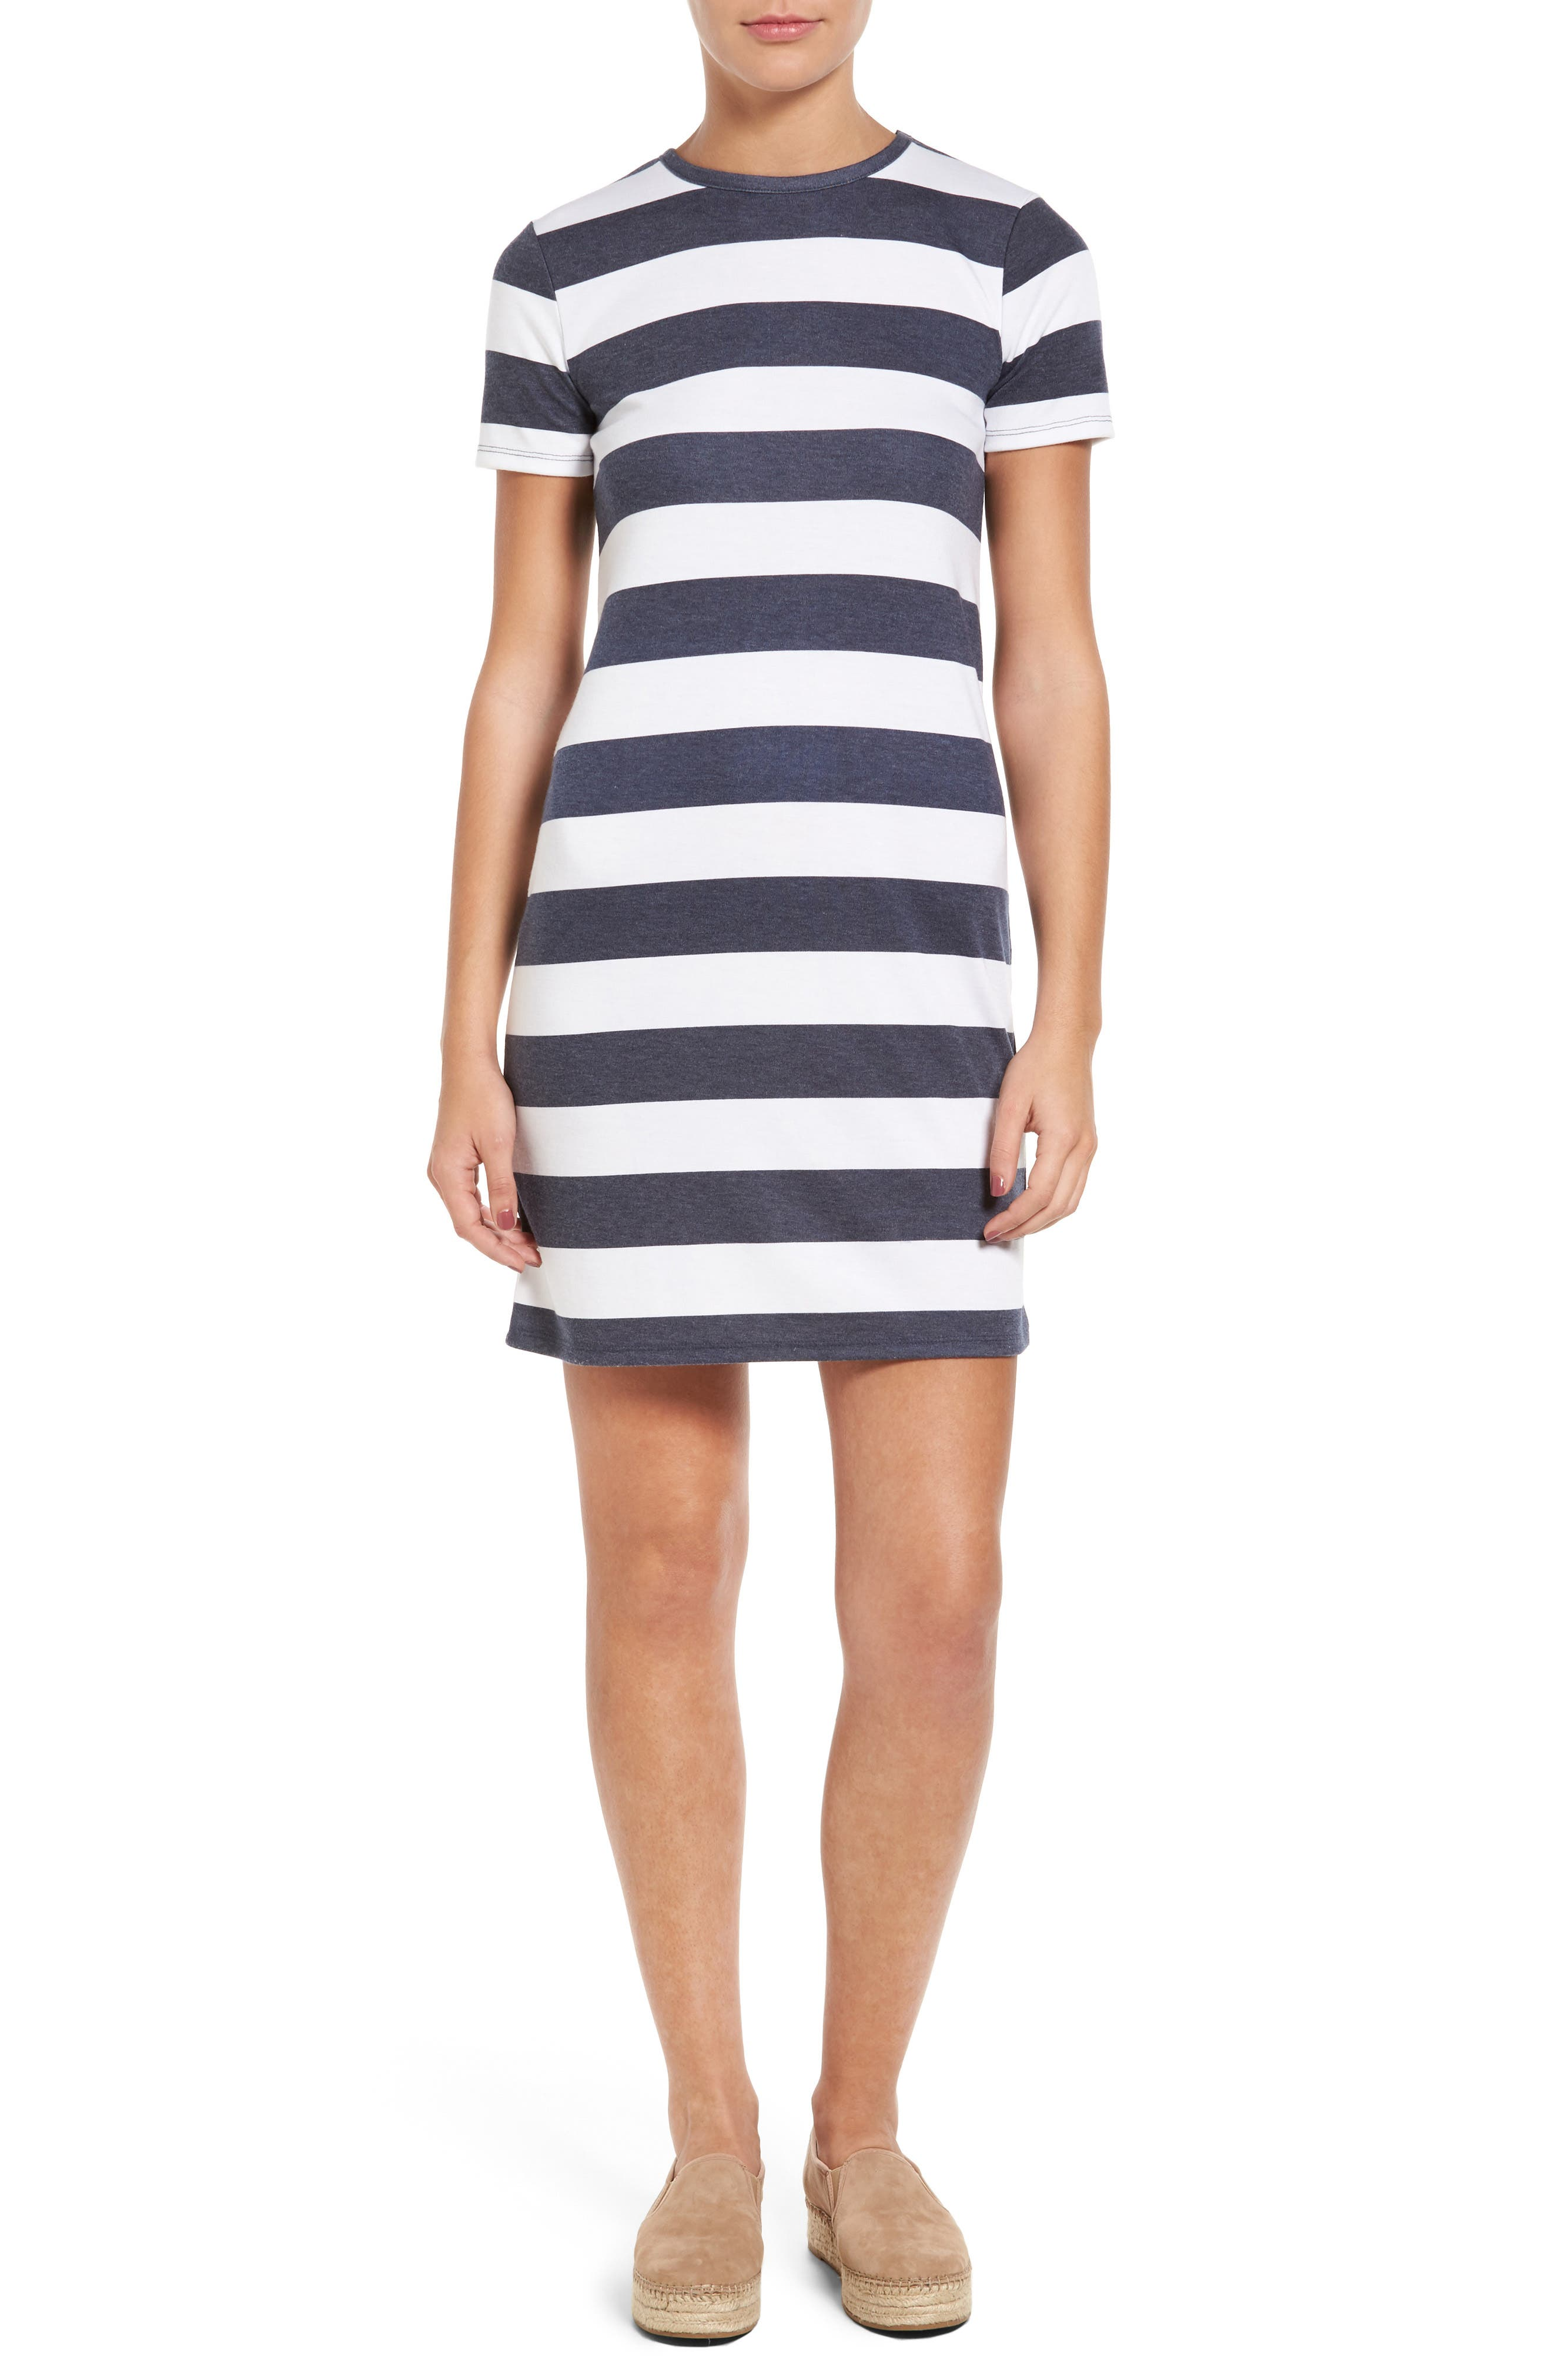 Alternate Image 1 Selected - MICHAEL Michael Kors Rugby Stripe T-Shirt Dress (Regular & Petite)